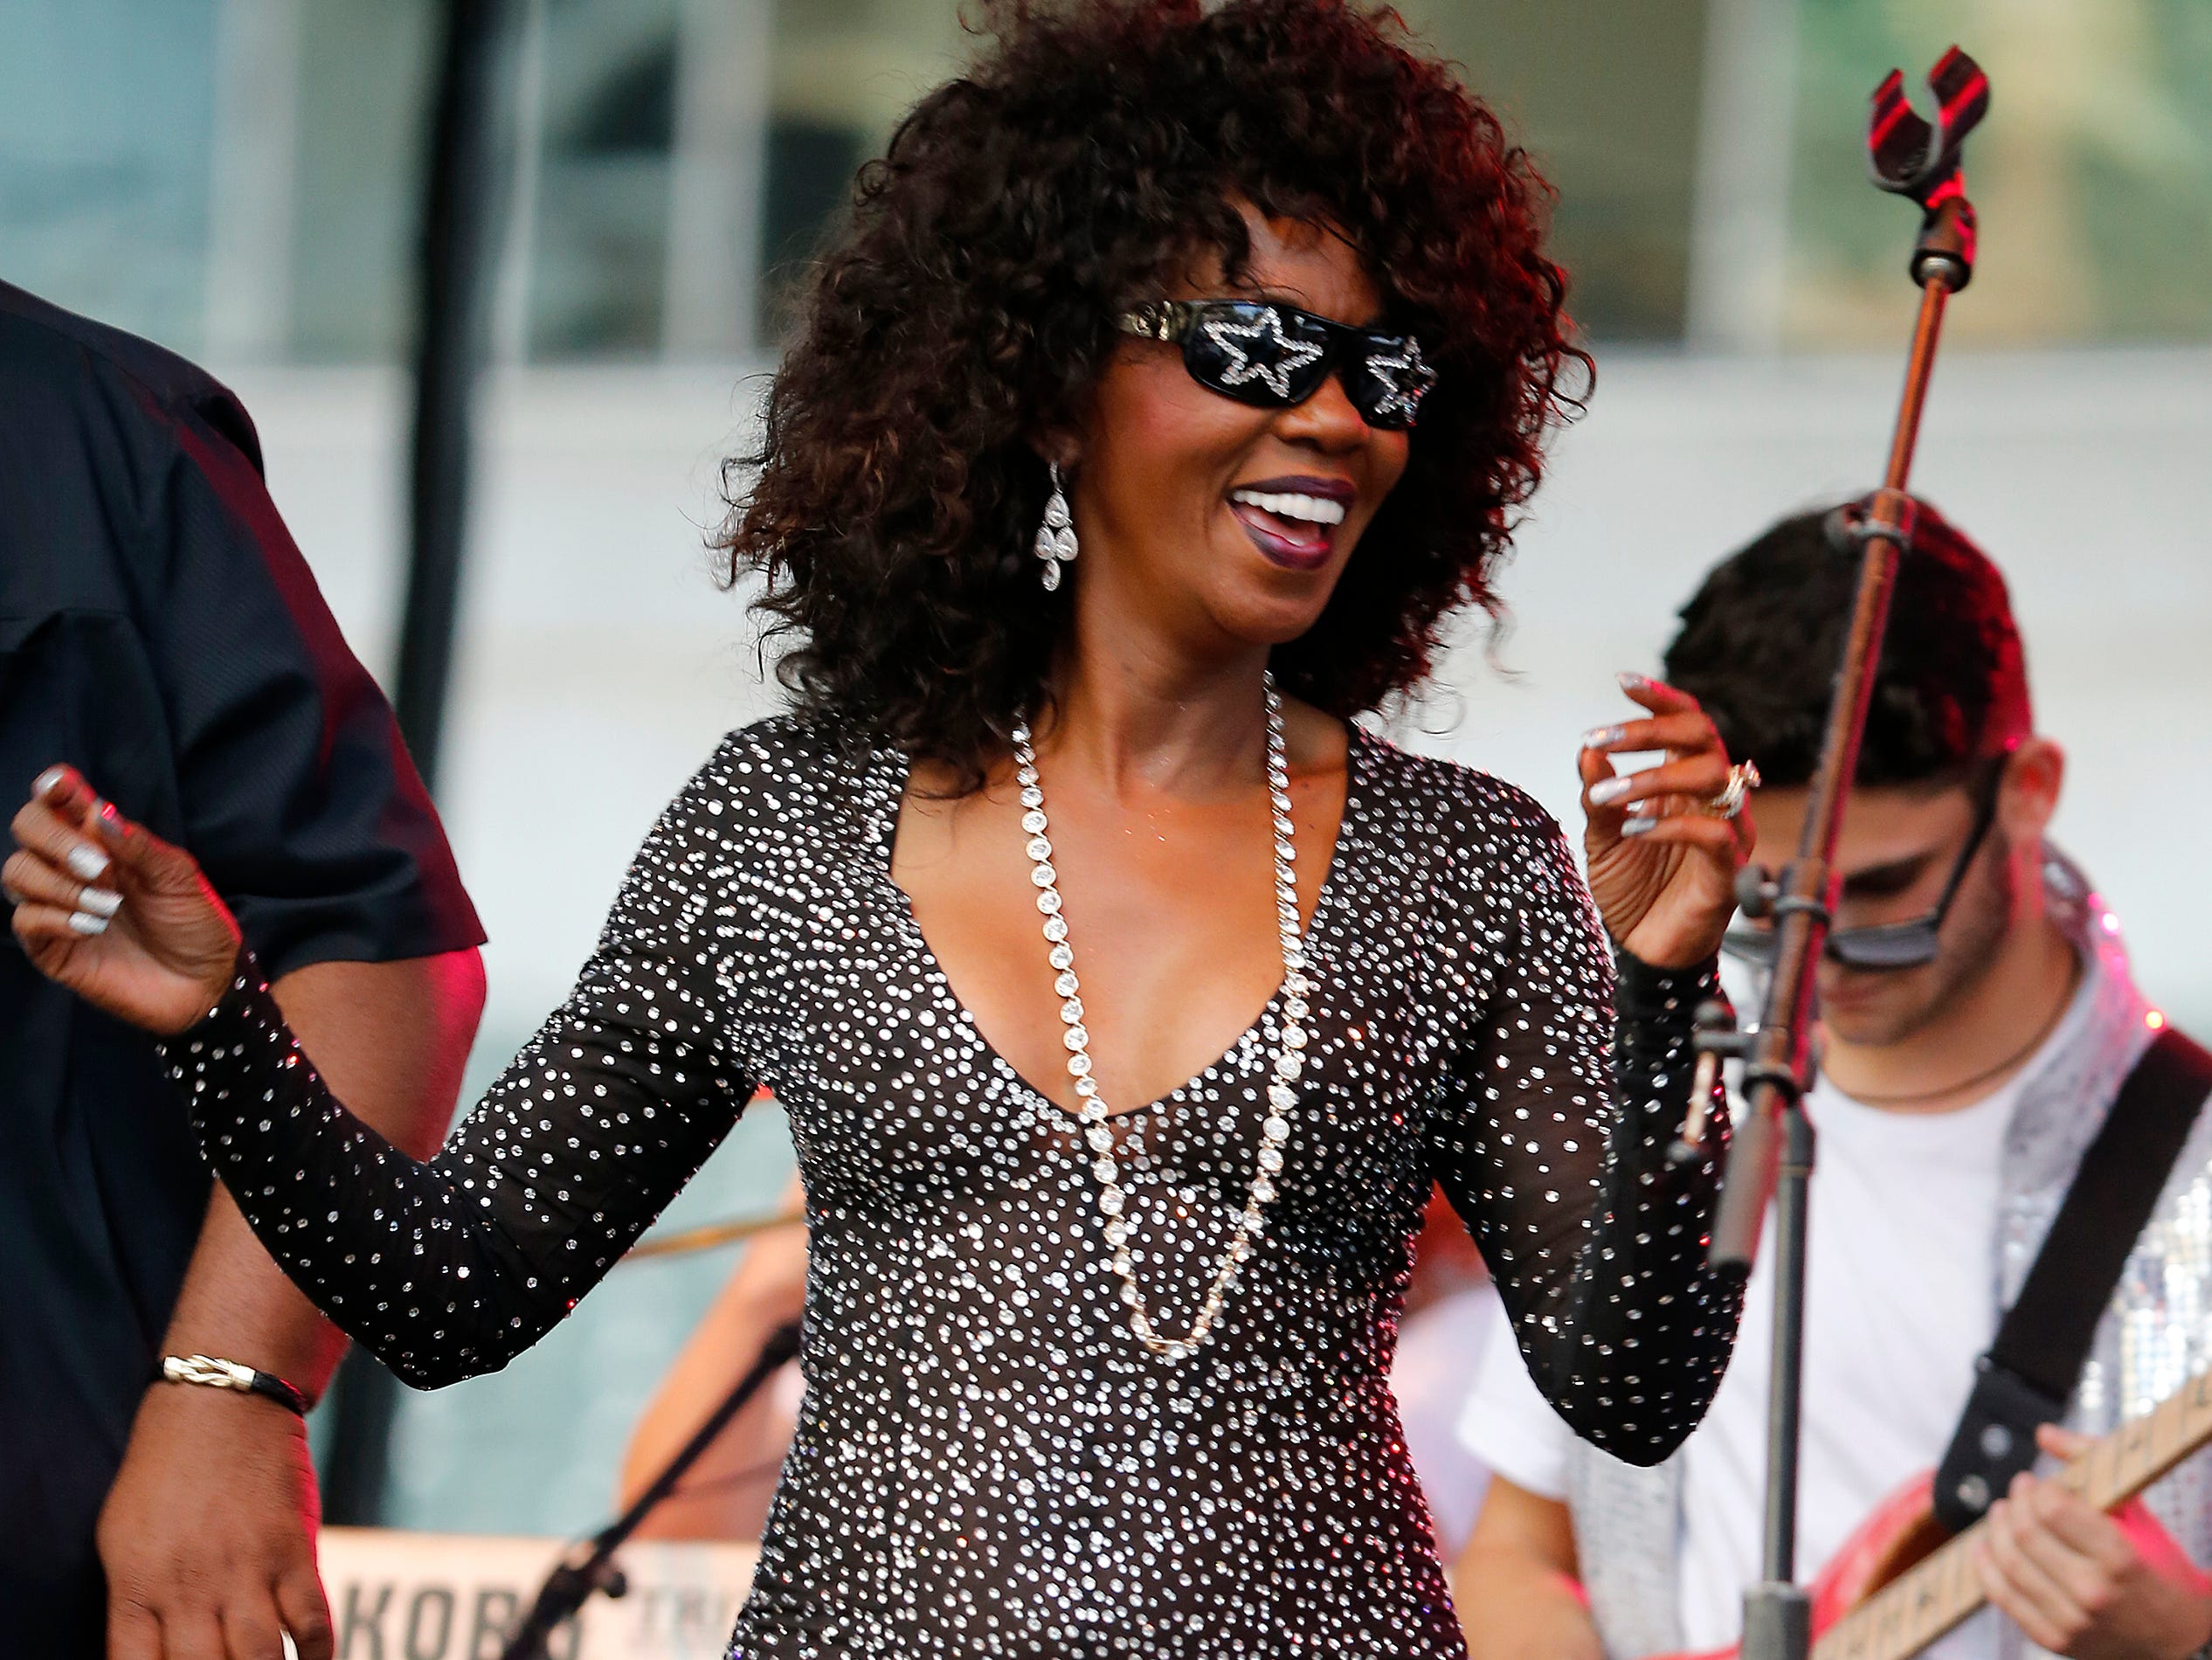 Patti Collins dances on stage as her husband Bootsy Collins performs during the Cincinnati Music Festival.